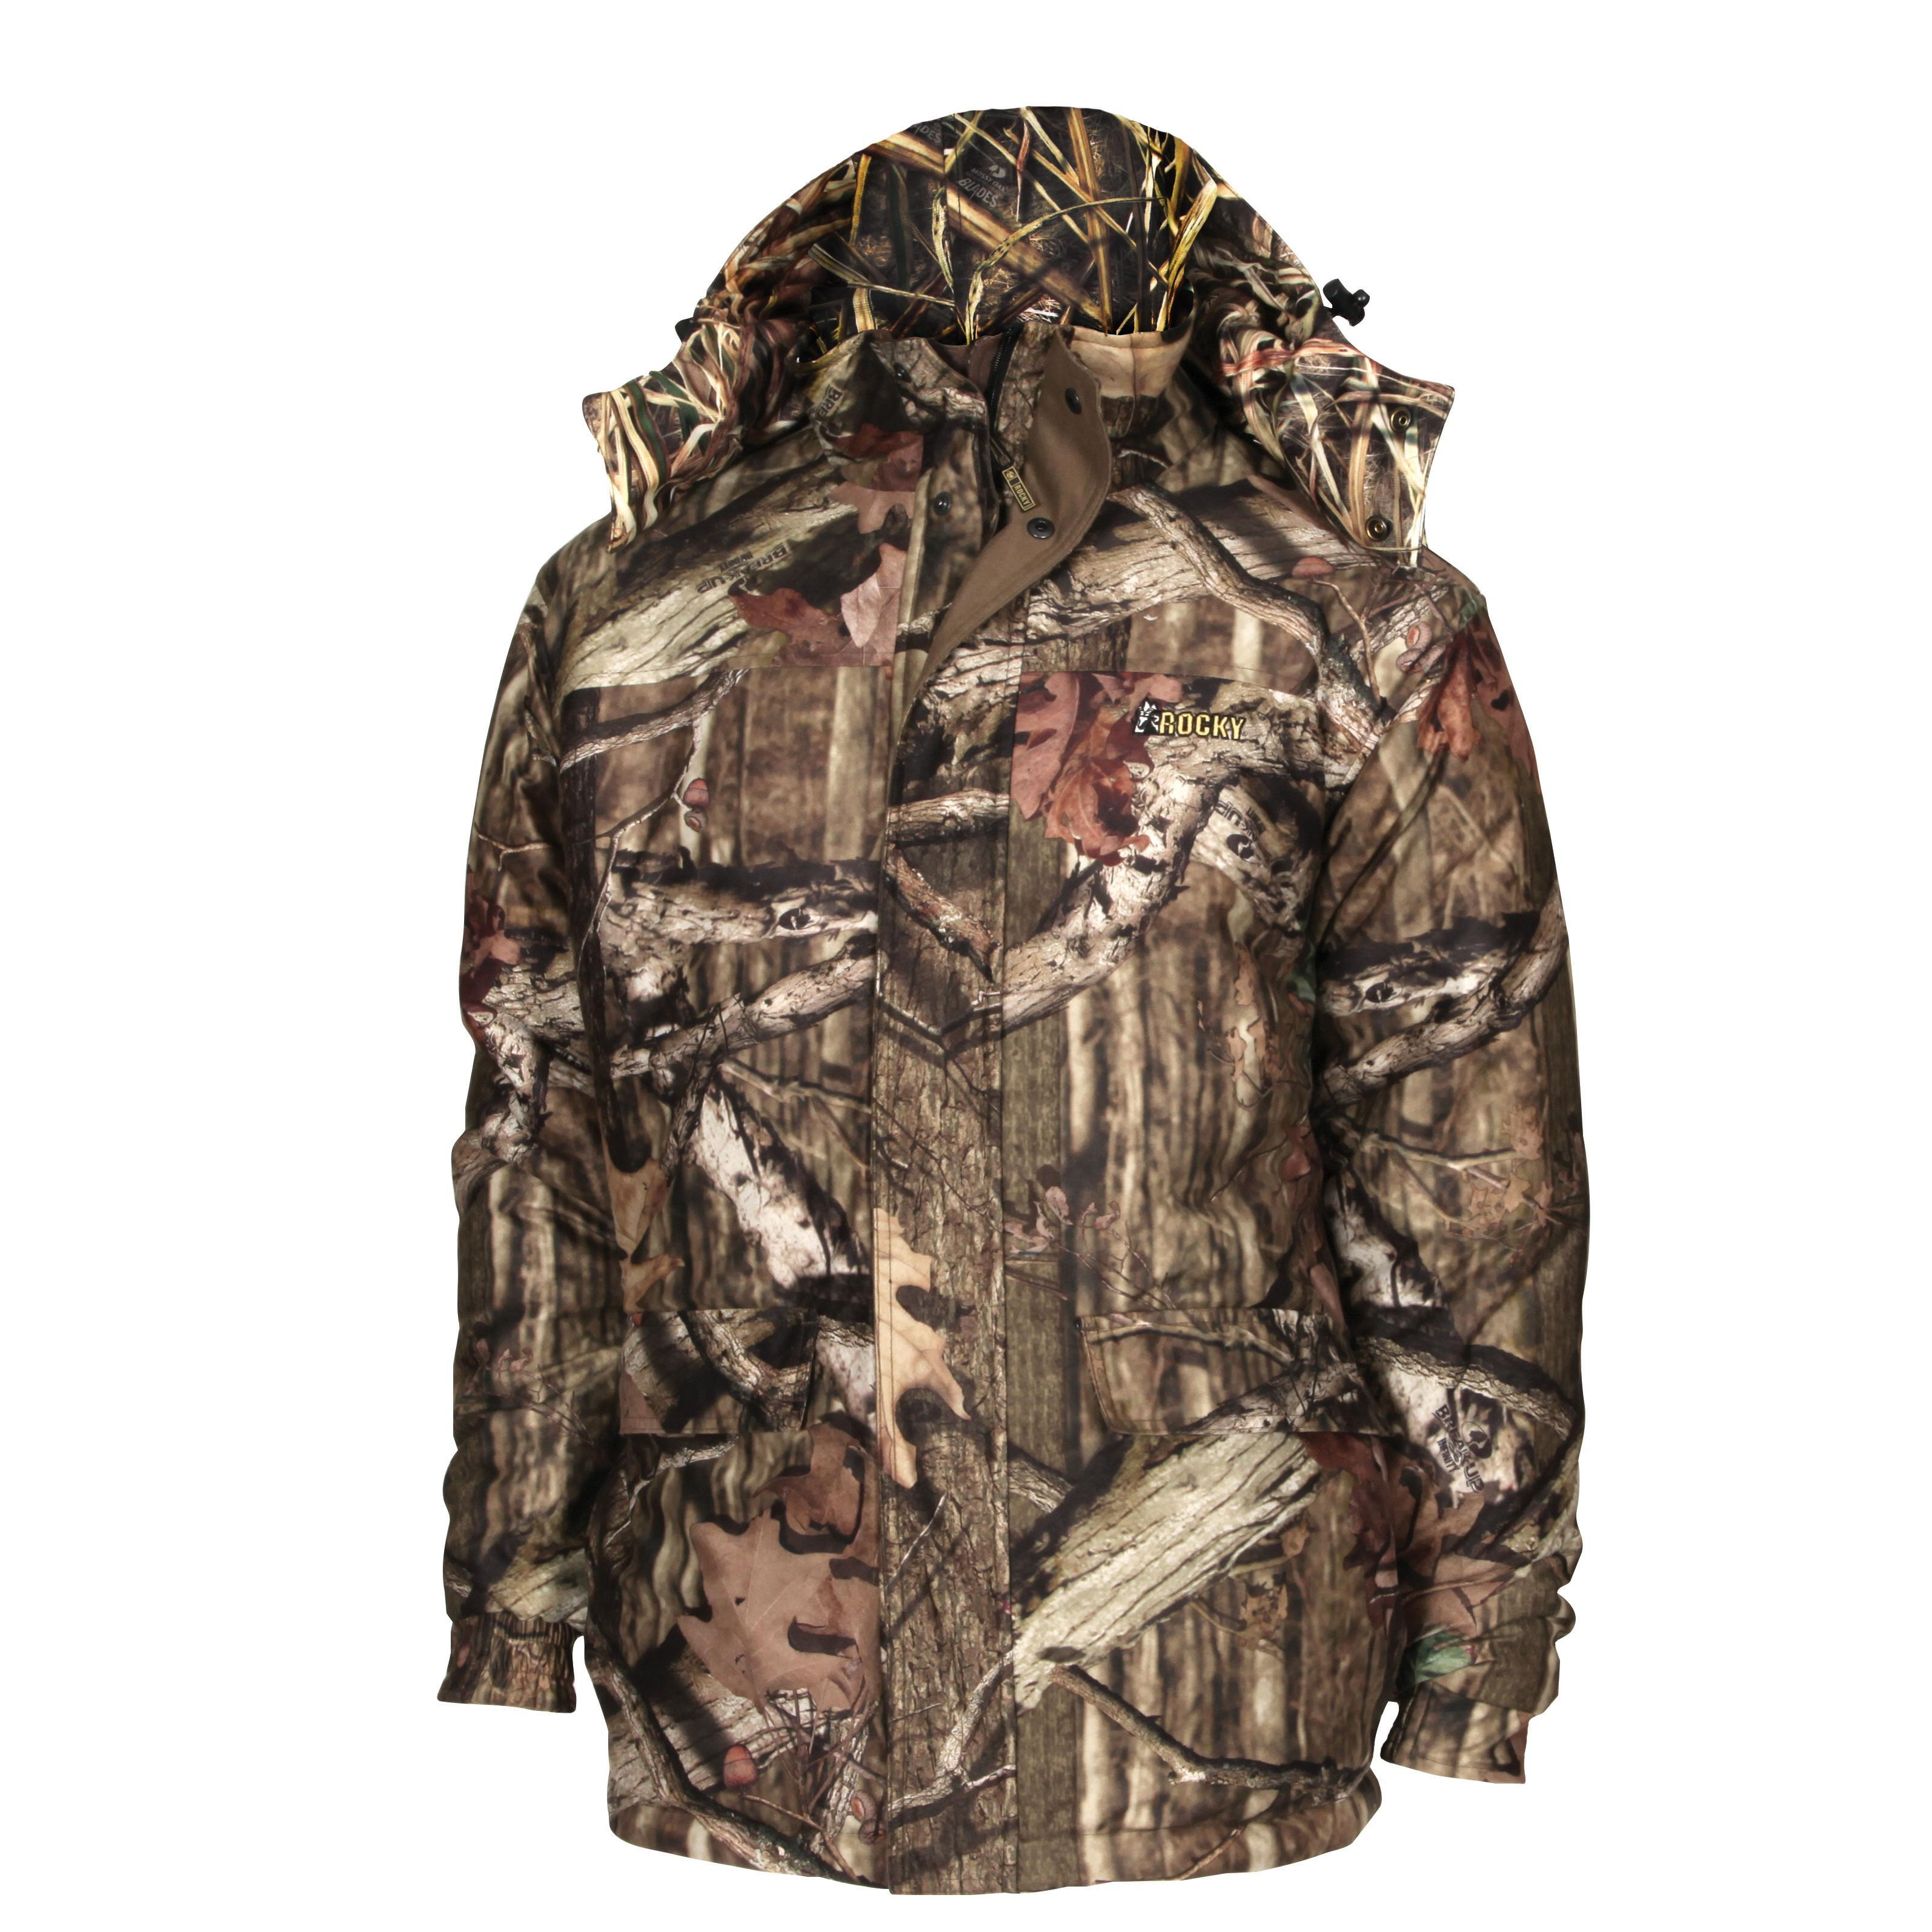 7993e9b0548d3 Rocky ProHunter Reversible 80G Insulated Parka, , large. Men's hunting  jacket ...